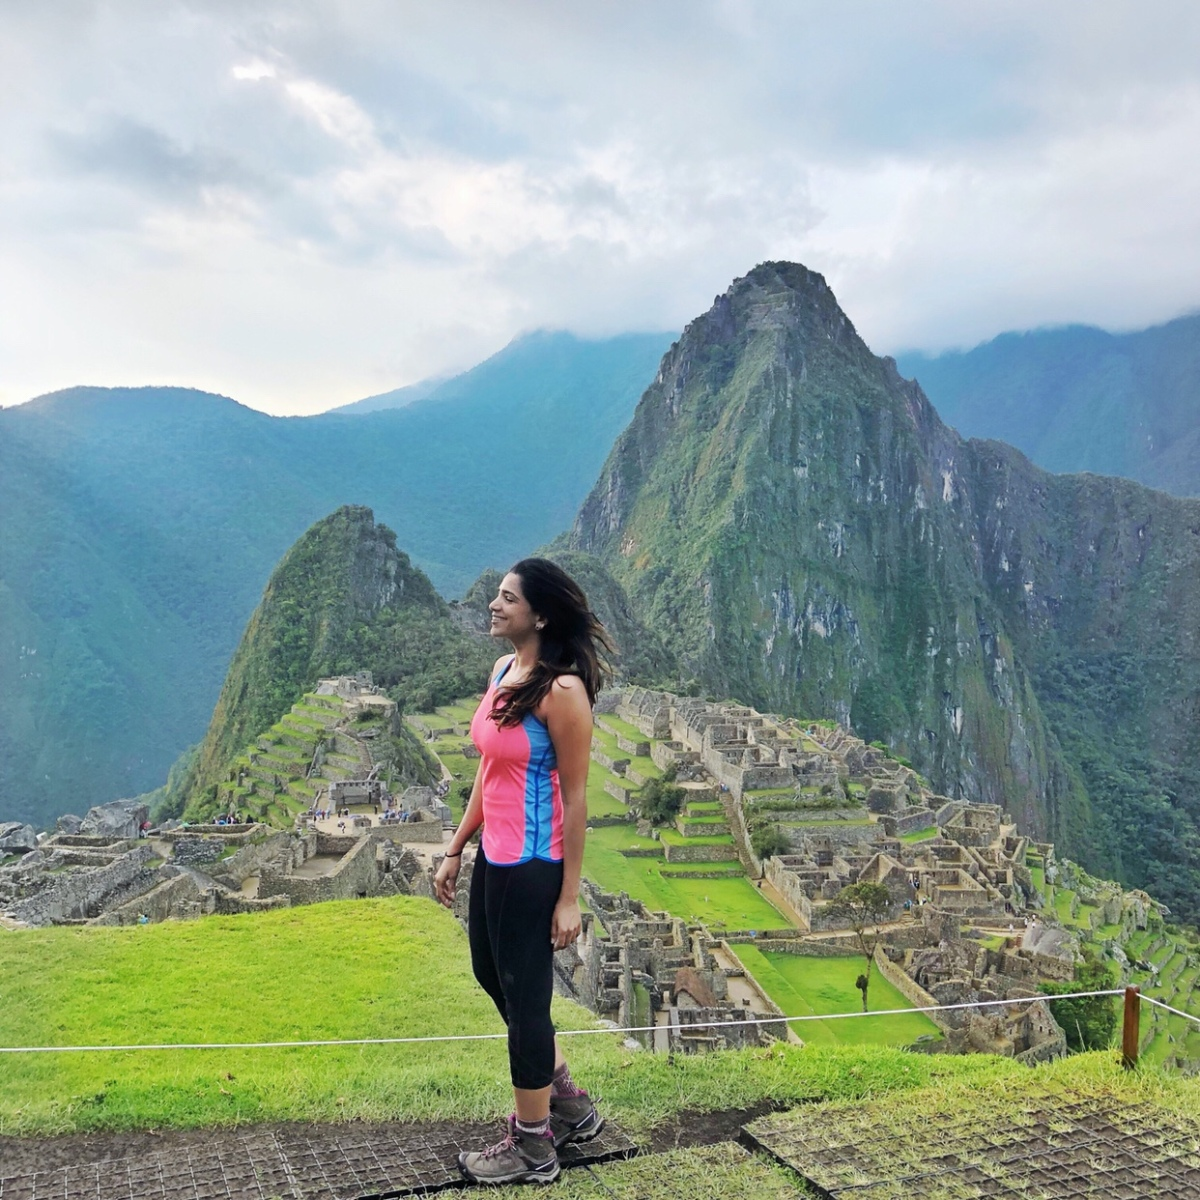 My Inca Trail Hike to Machu Picchu & Solo Trip to Cusco, Peru: An Adventure of a Lifetime